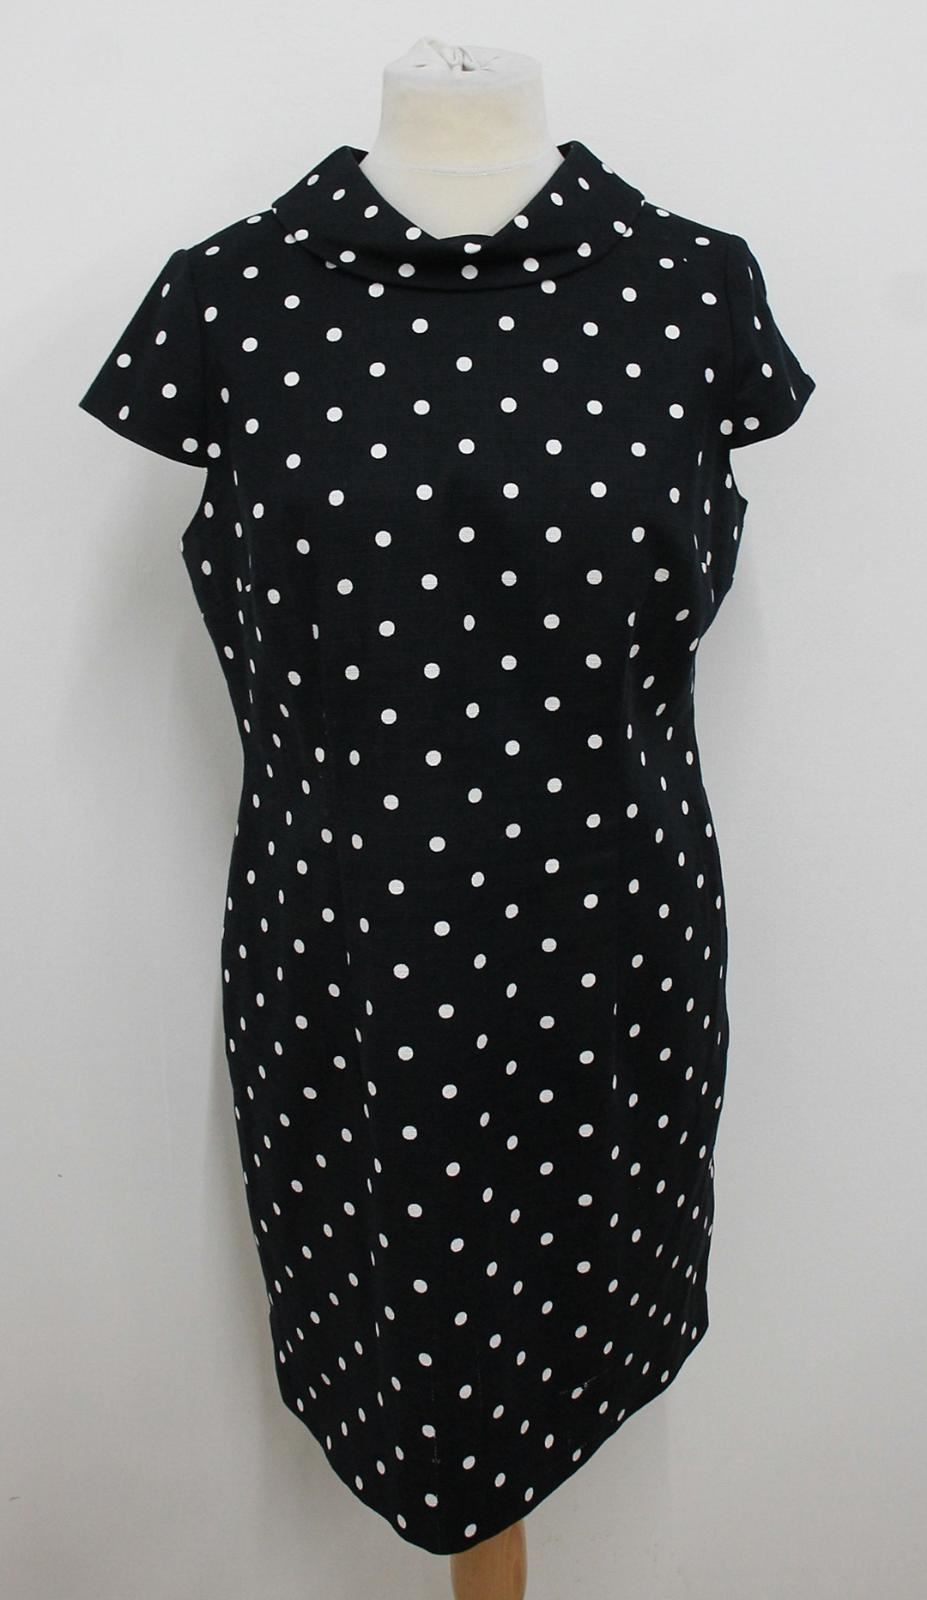 HOBBS-Ladies-Navy-Blue-White-Polka-Dot-Funnel-Neck-Liana-Shift-Dress-UK16-NEW